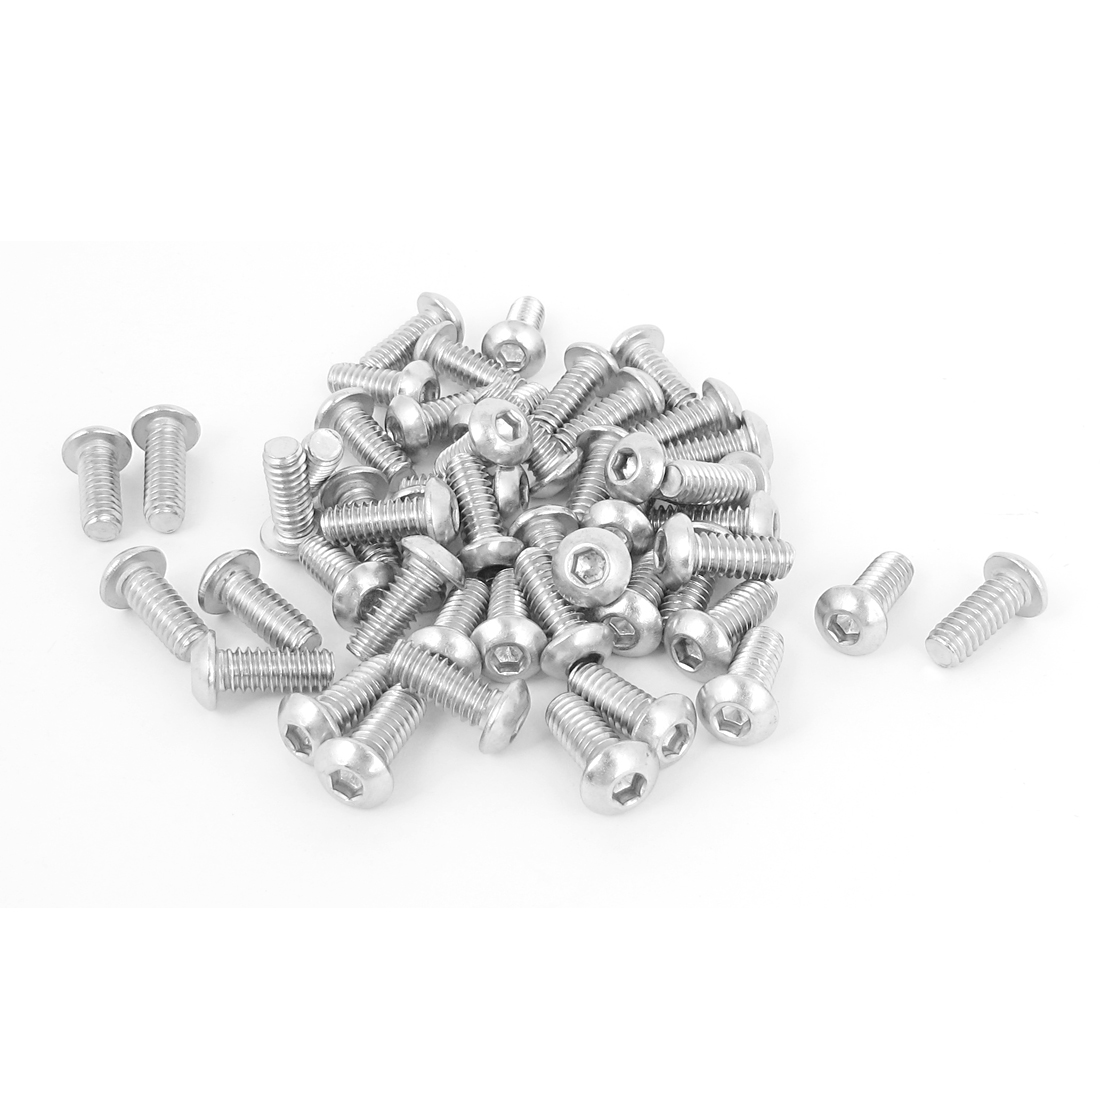 "50pcs 1/4""-20x5/8"" Stainless Steel Hex Socket Button Head Bolts Screws"